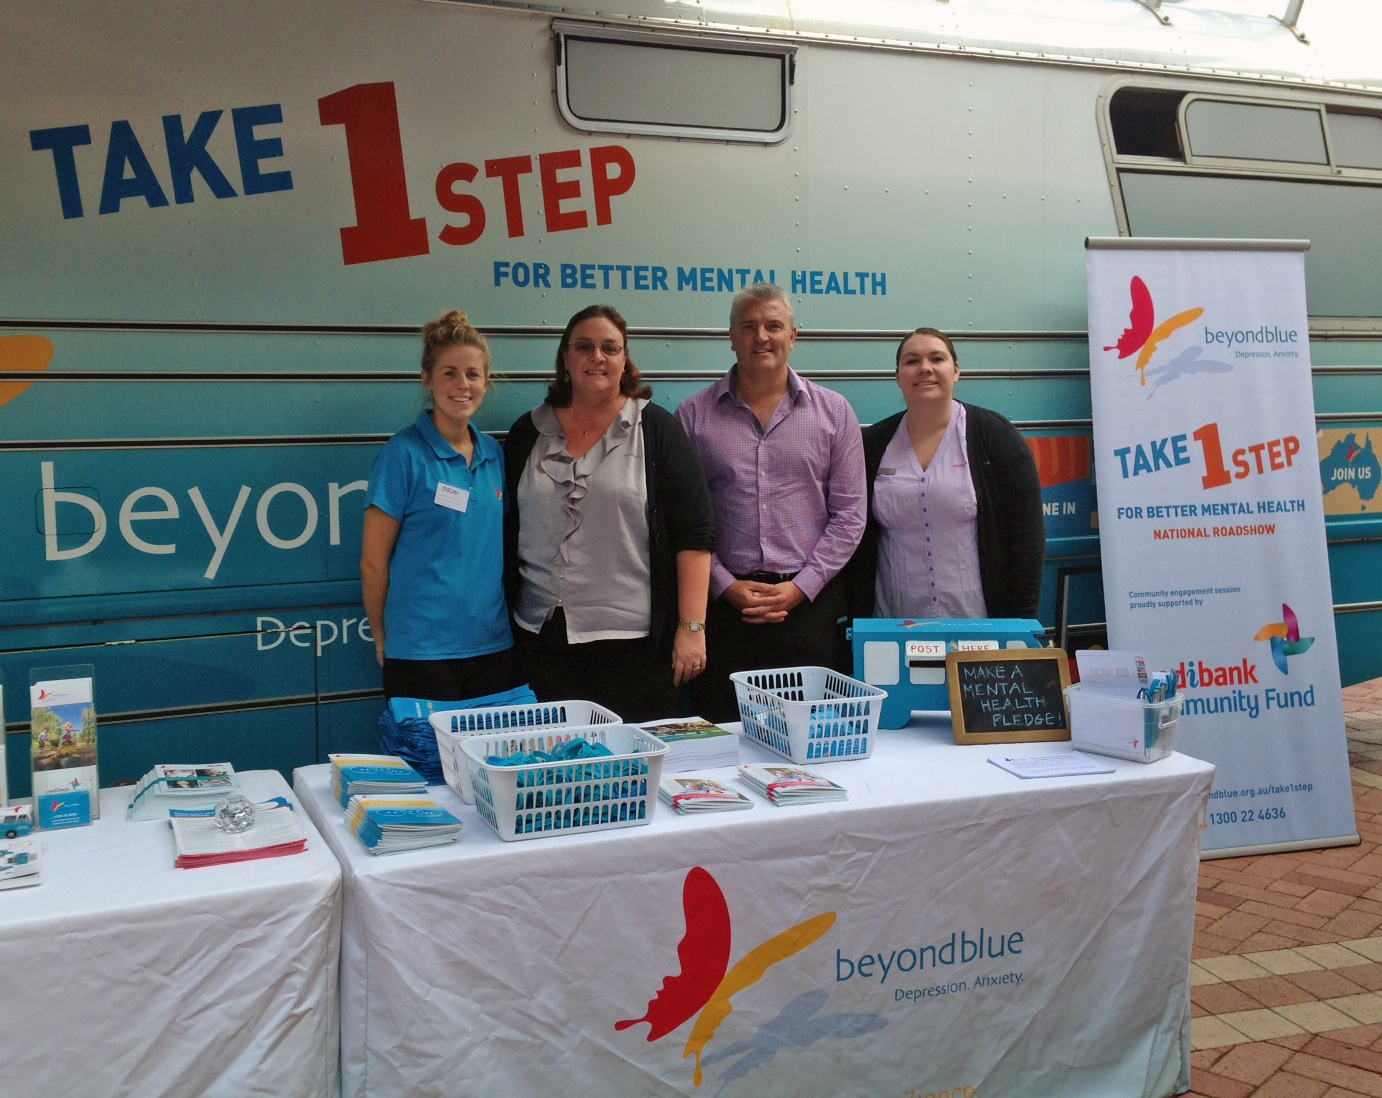 Medibank staff from Garden City stopped by the bus in Booragoon.